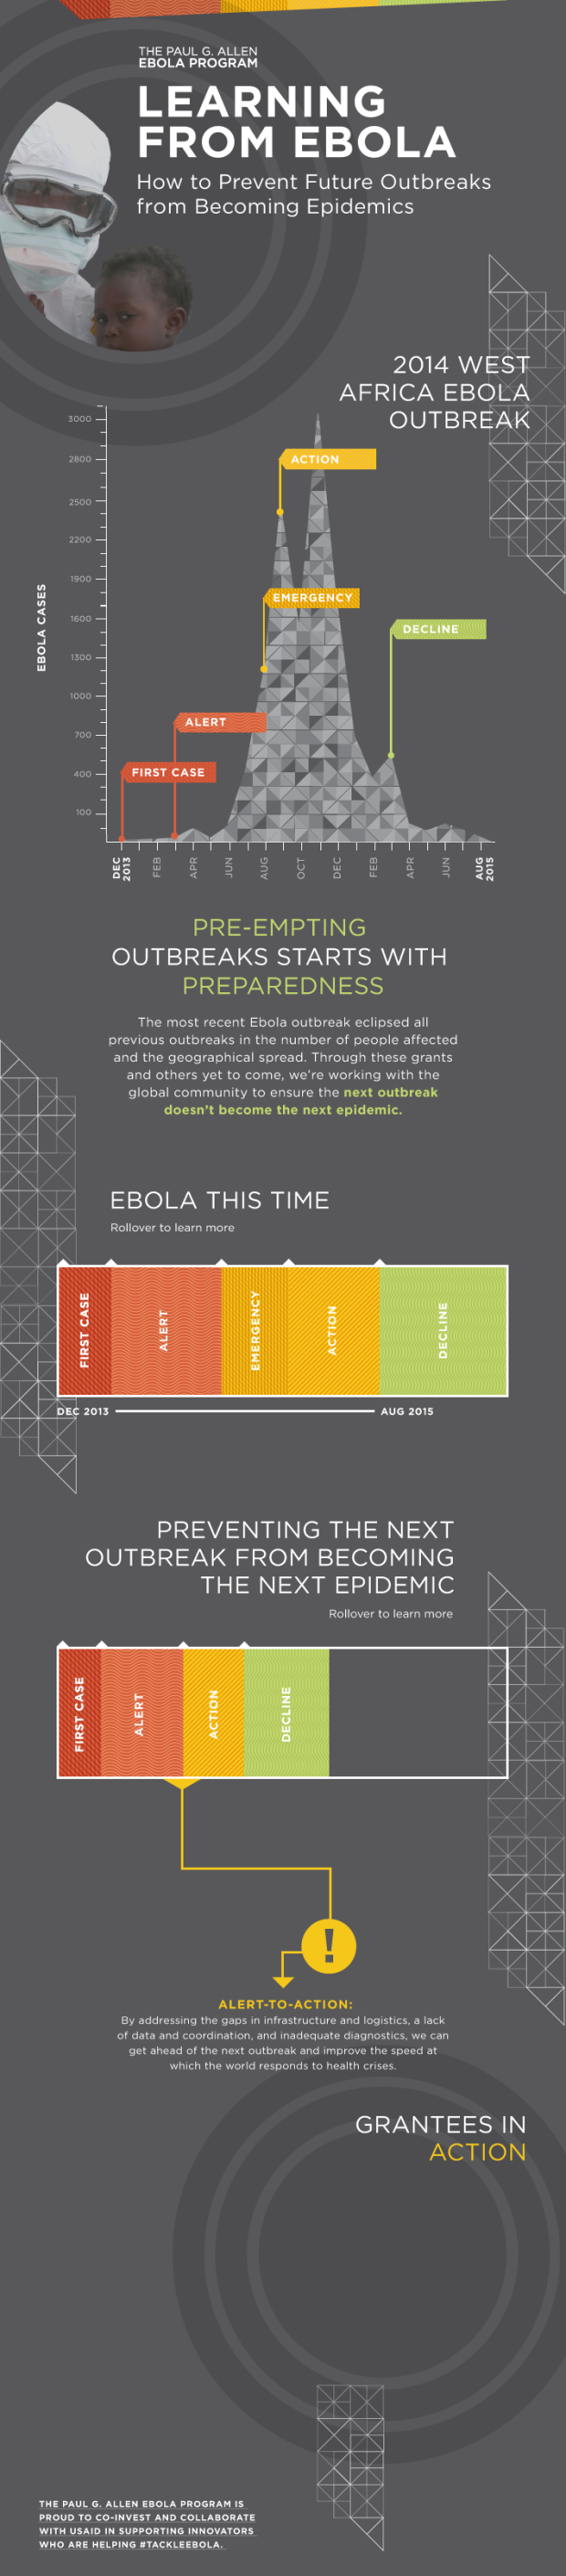 """Image via paulallen.com/""""Learning From Ebola"""" infographic"""